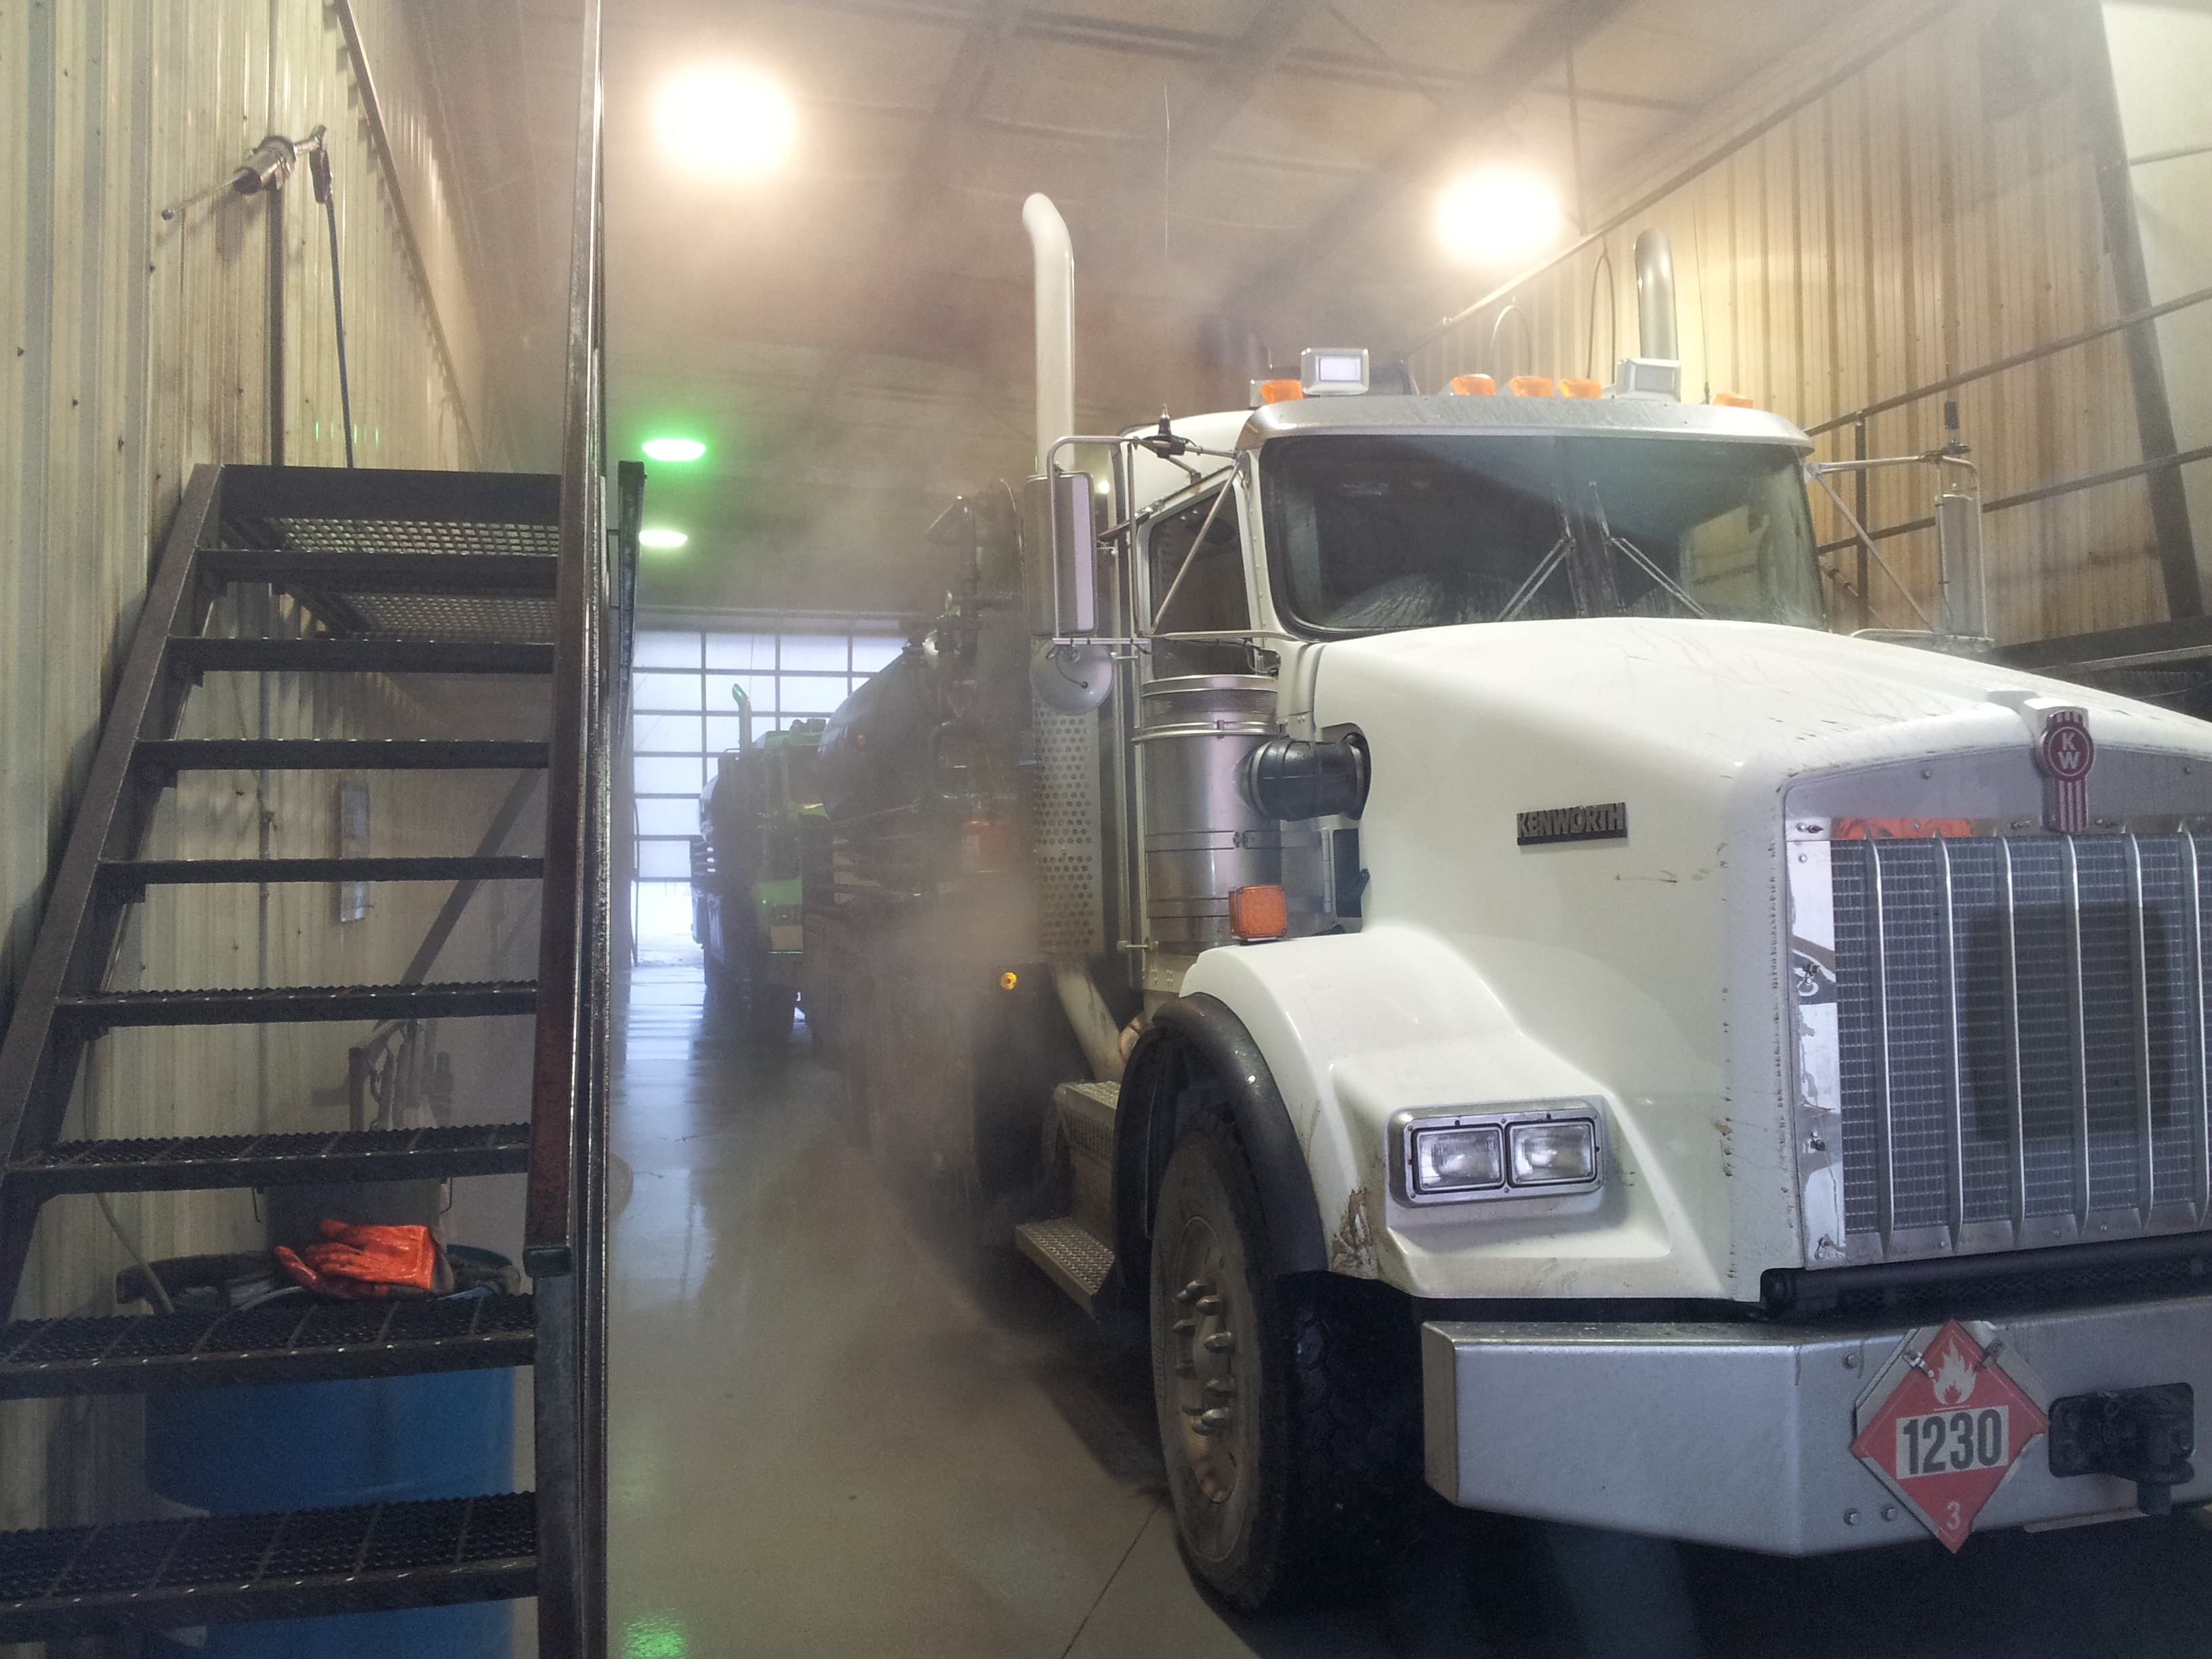 Outwest Truck Amp Car Wash We Want The Dirt On You